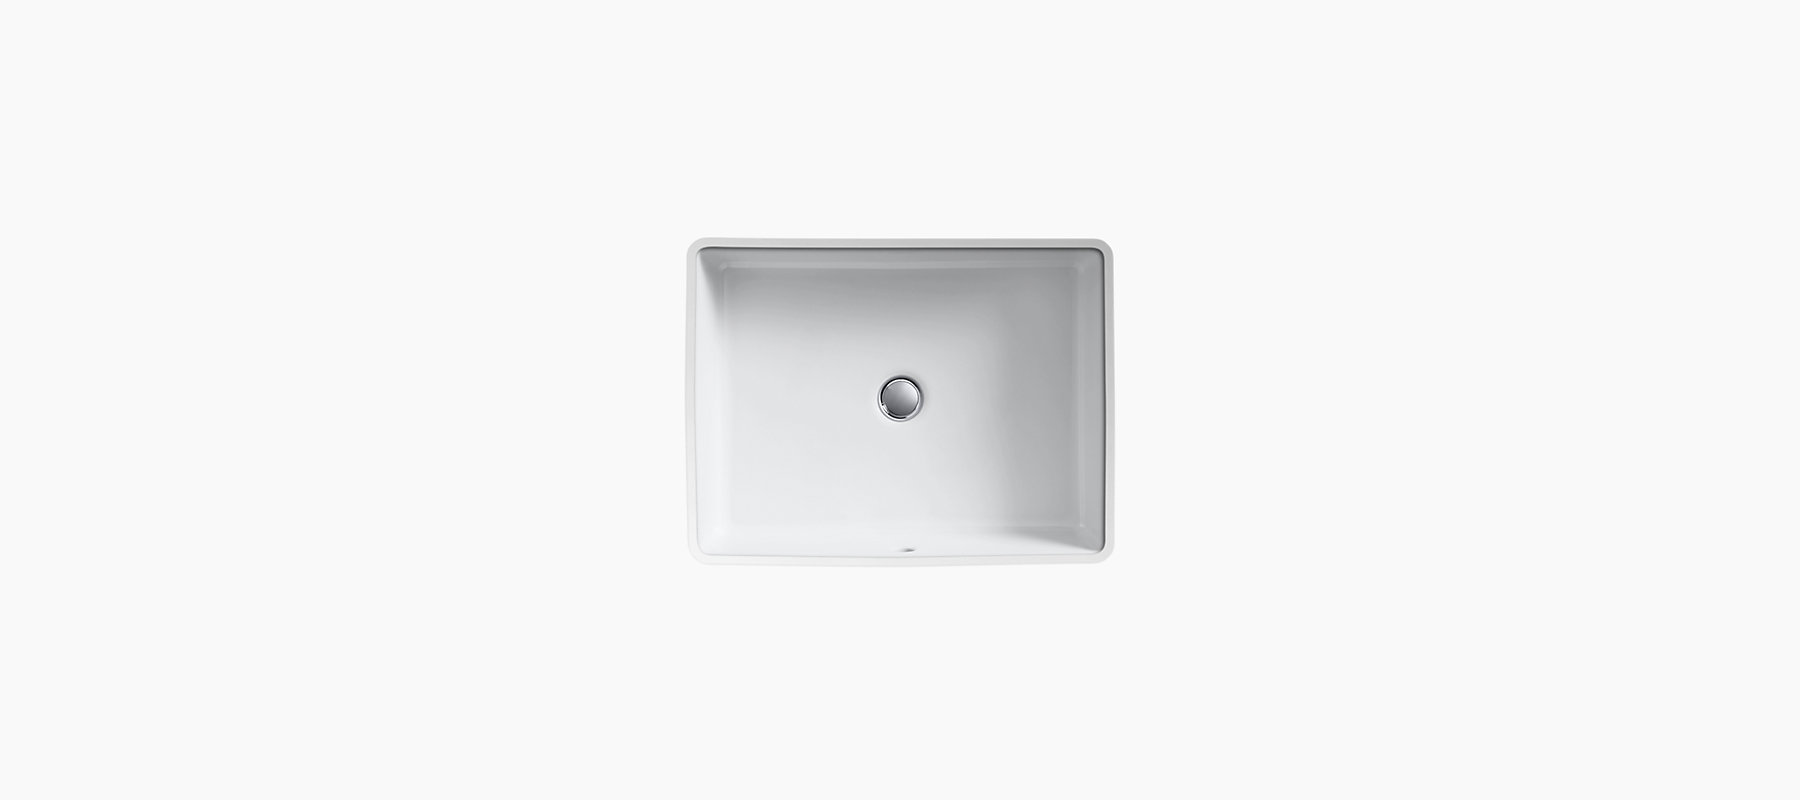 Sink Blank : Verticyl Undermount Rectangular Sink K-2882 KOHLER